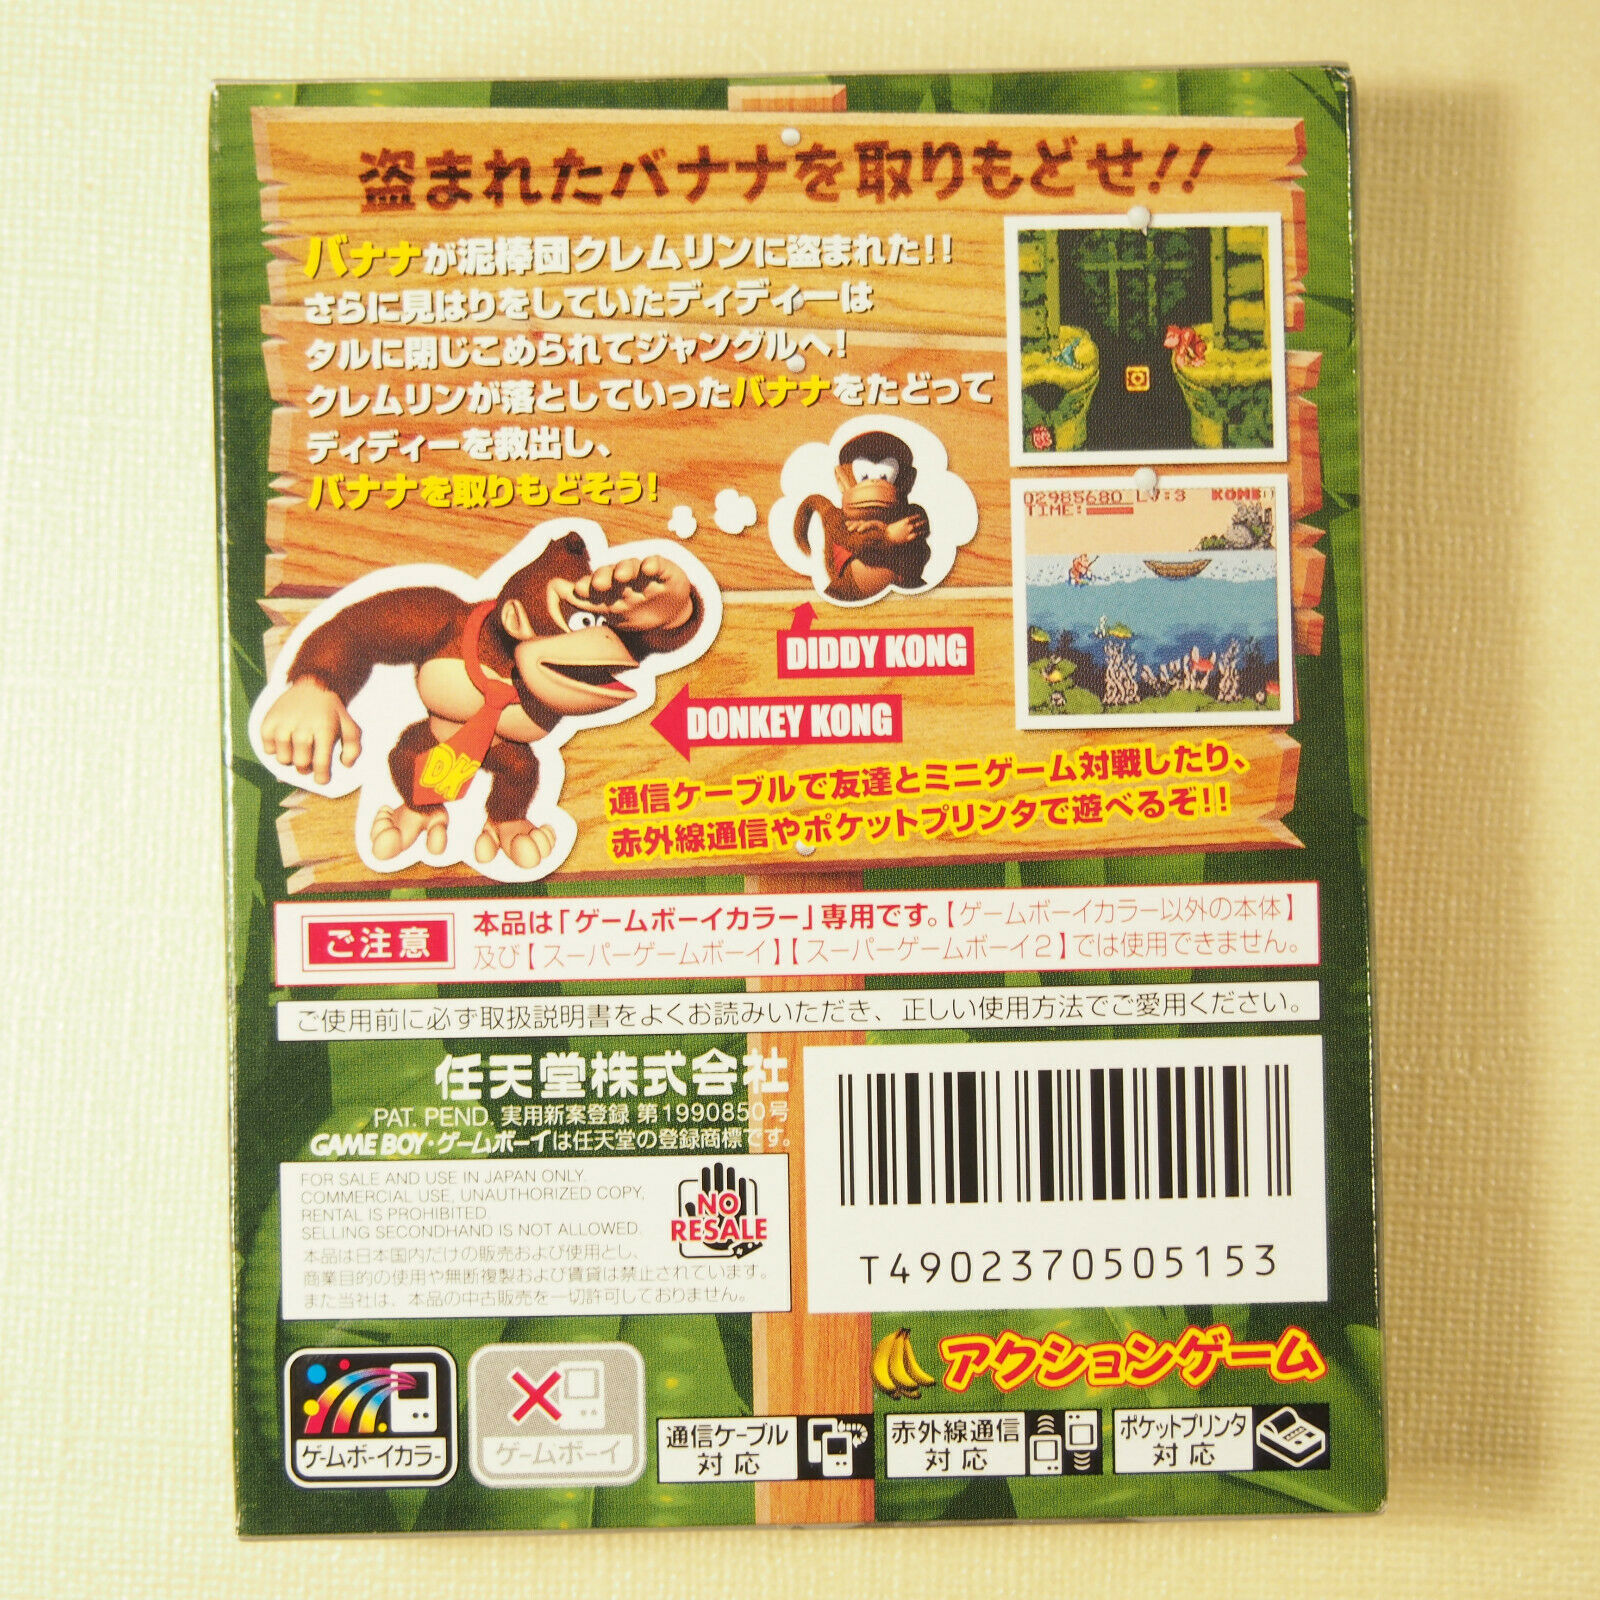 Donkey Kong 2001 Complete in Box (Nintendo Gameboy Color GBC, 2001) Japan image 3